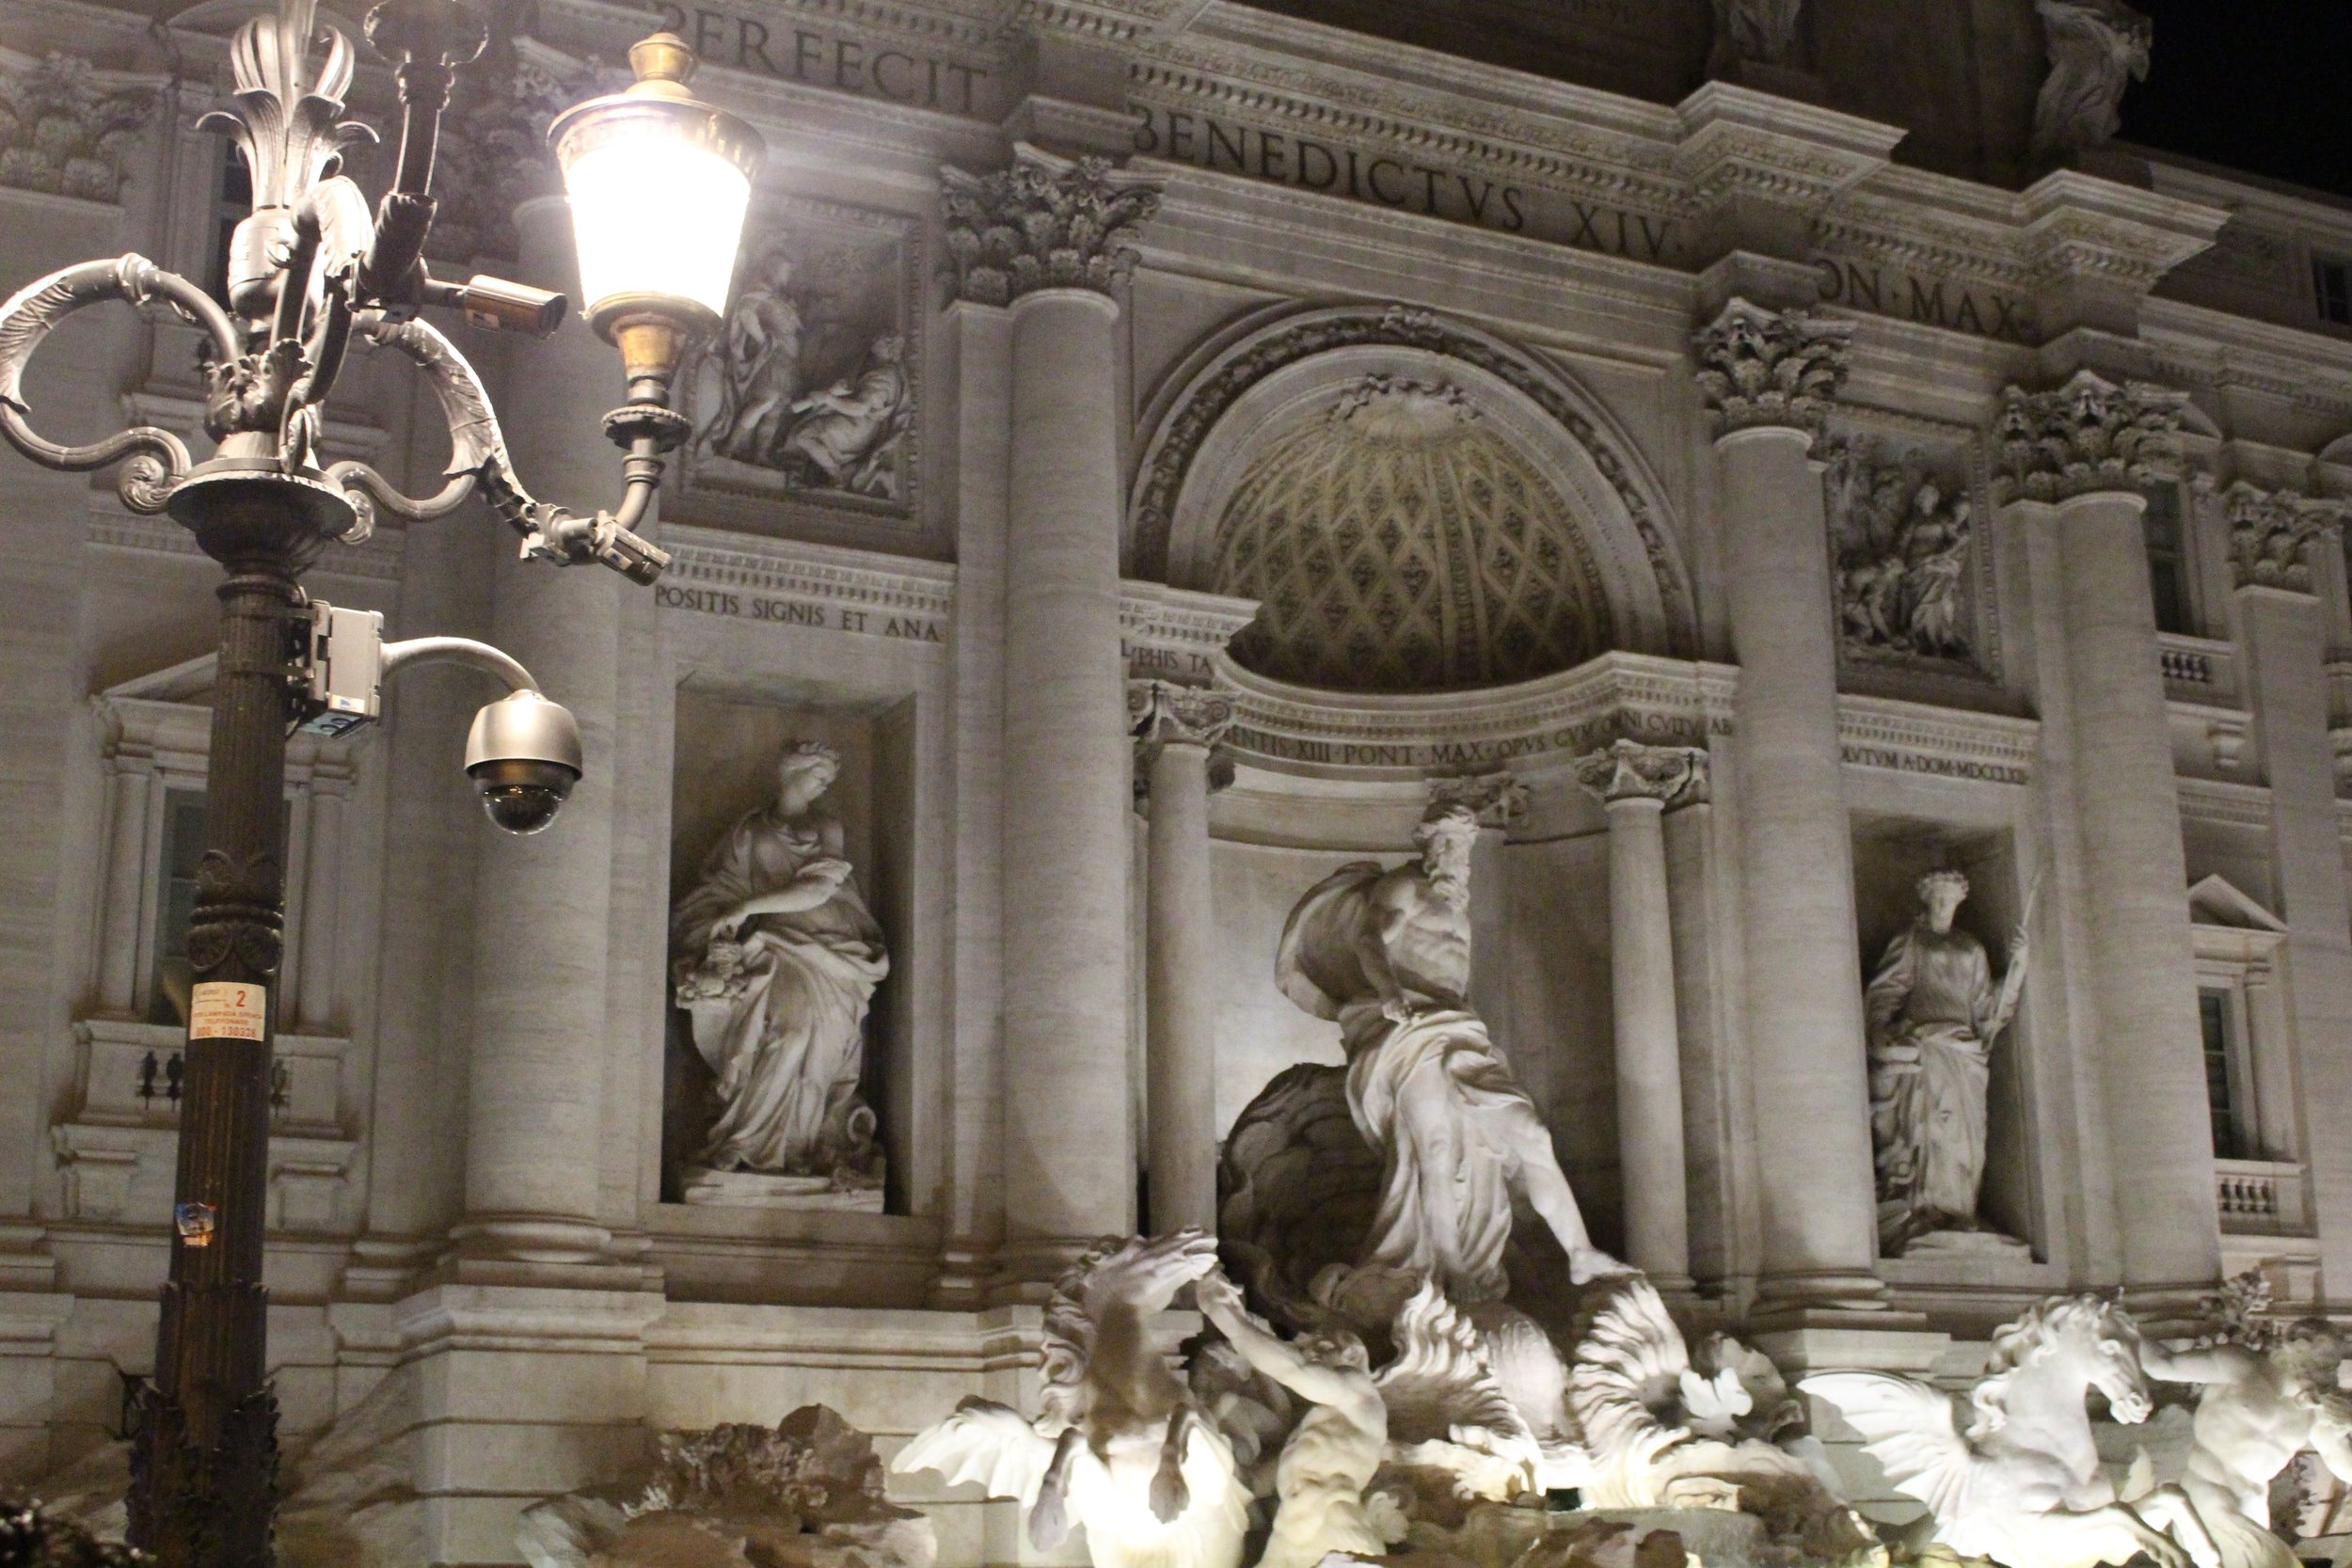 This is the Trevi fountain, a little blurry but this picture is what Rome at night feels like. Maybe even a little blurry after a big dinner a few glasses of wine and limoncello